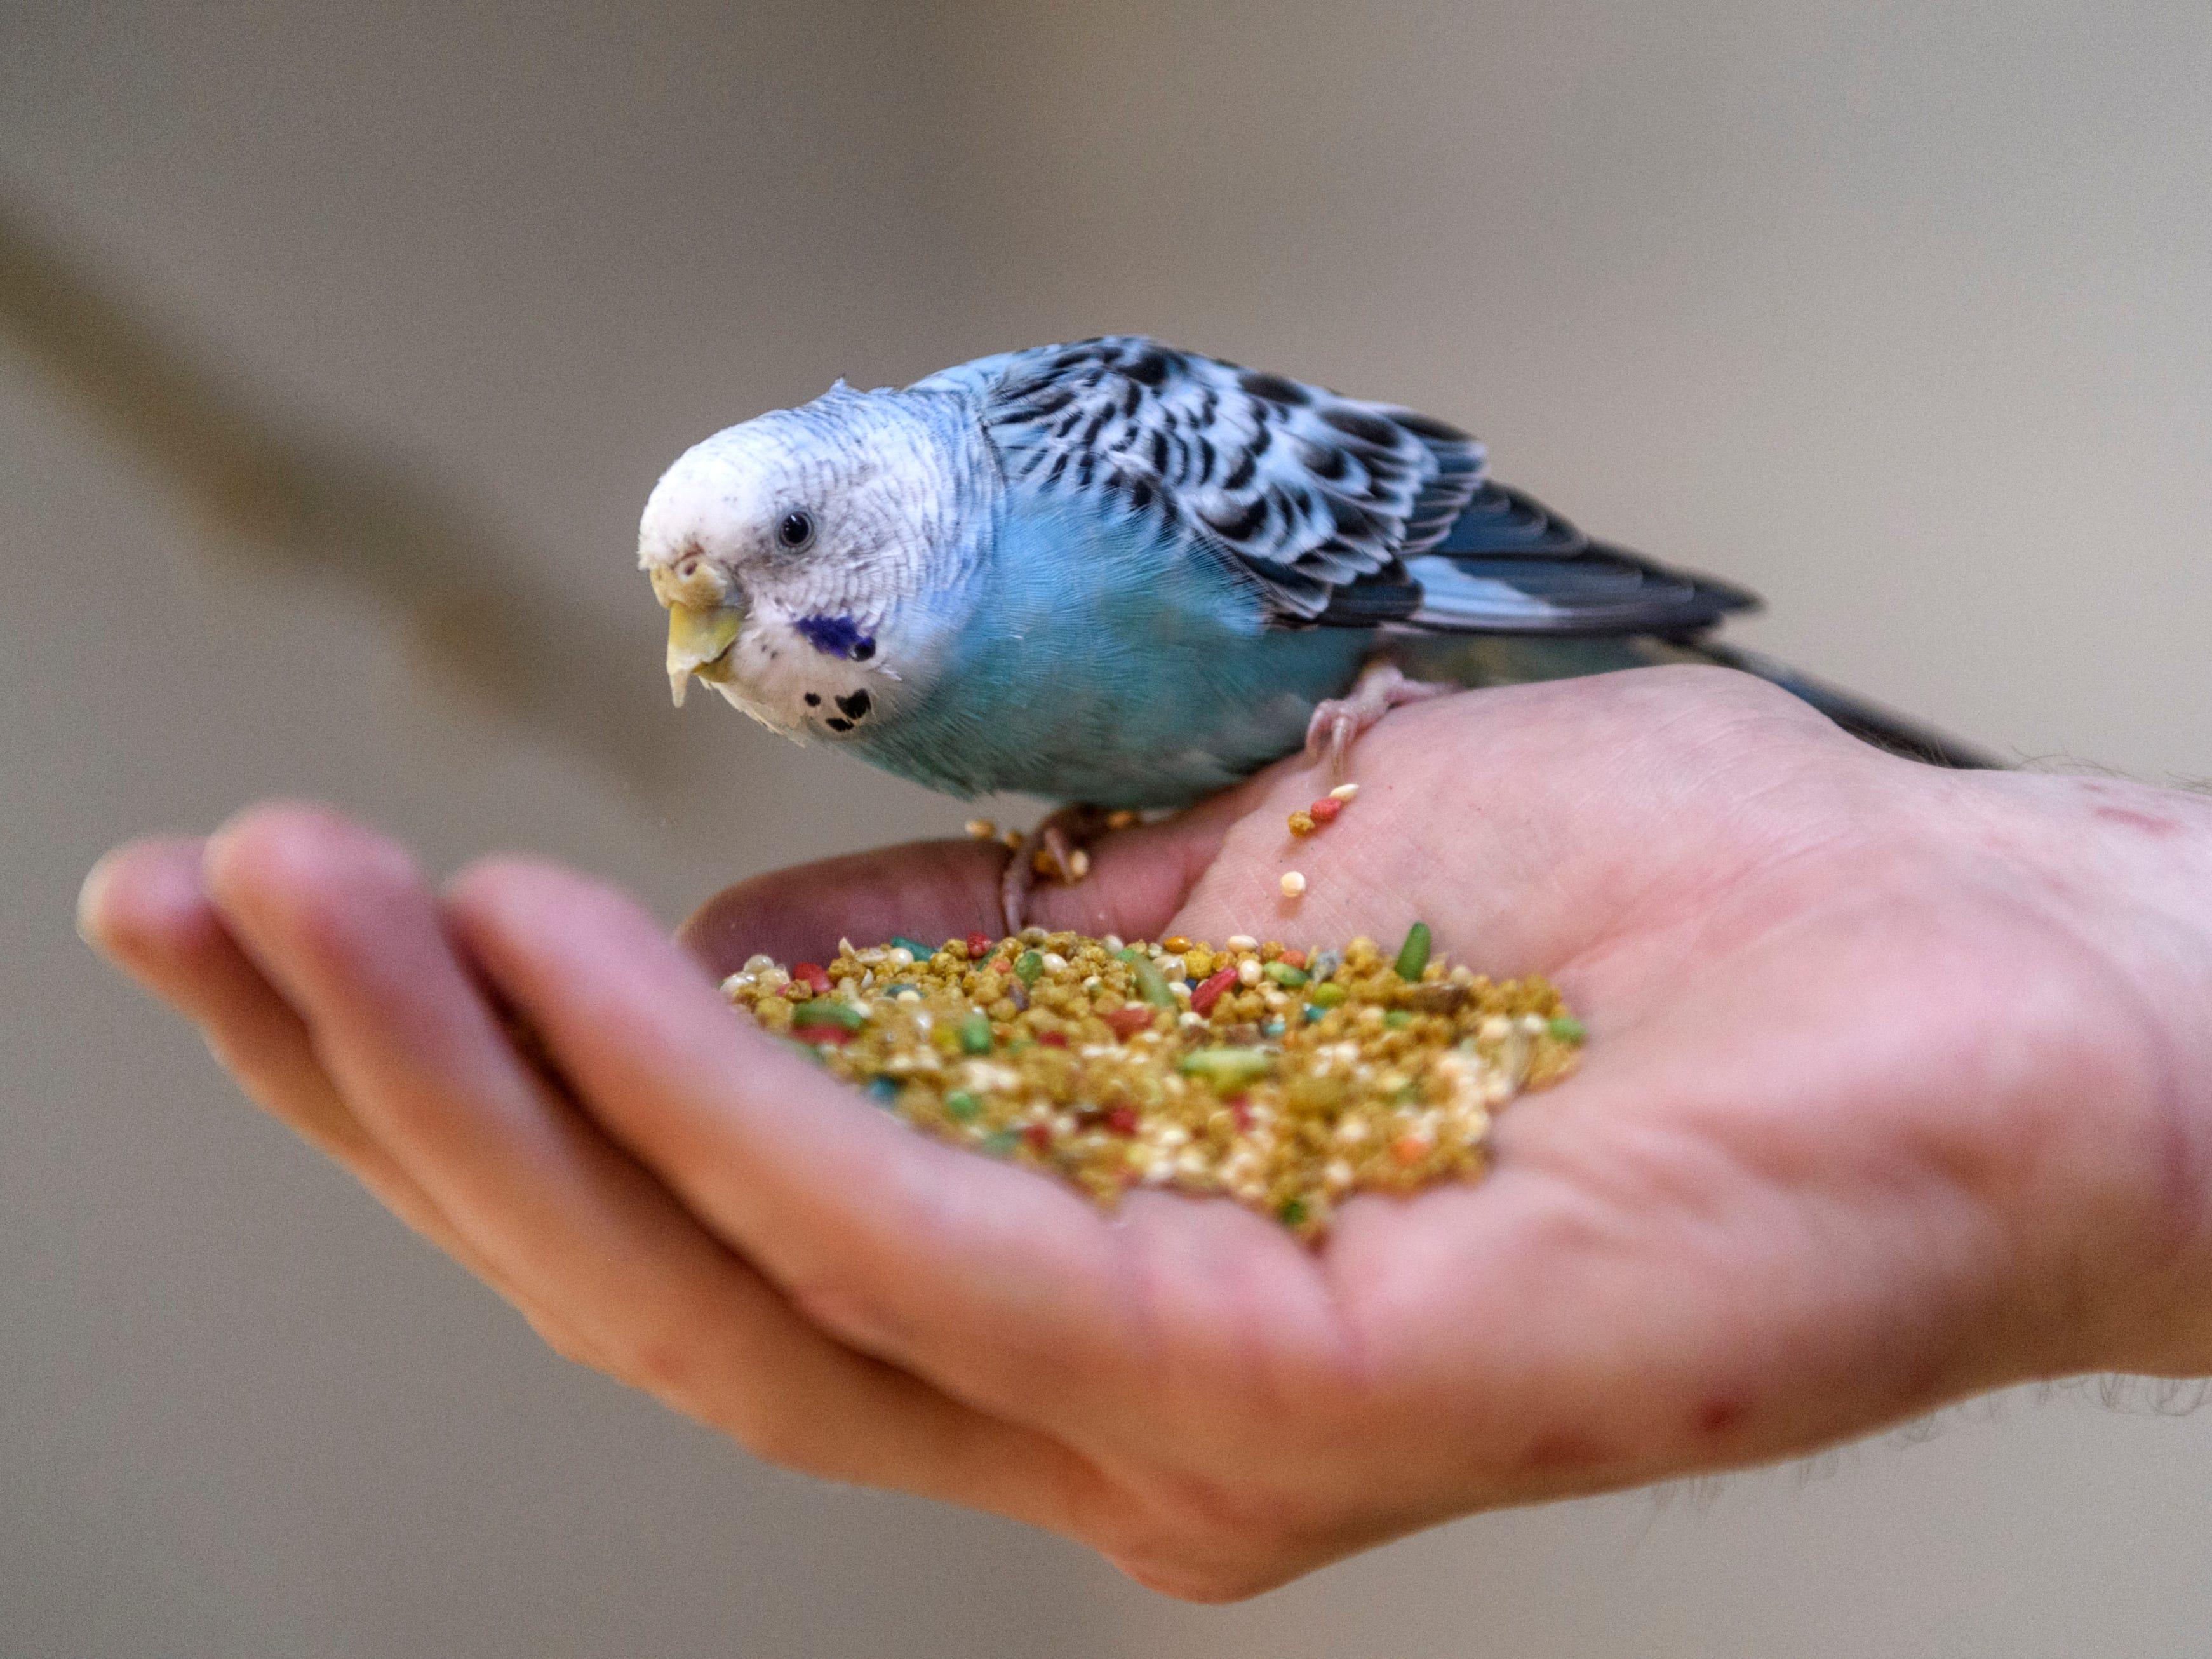 Zookeeper Bryan Plis lets a female Budgie eat out of his hand at Evansville's Mesker Park Zoo, Thursday morning, May 2, 2019. About 350 budgies are currently being sequestered inside as the zoo prepares a new interactive outdoor atrium exhibit, which will open to the public on May 17.